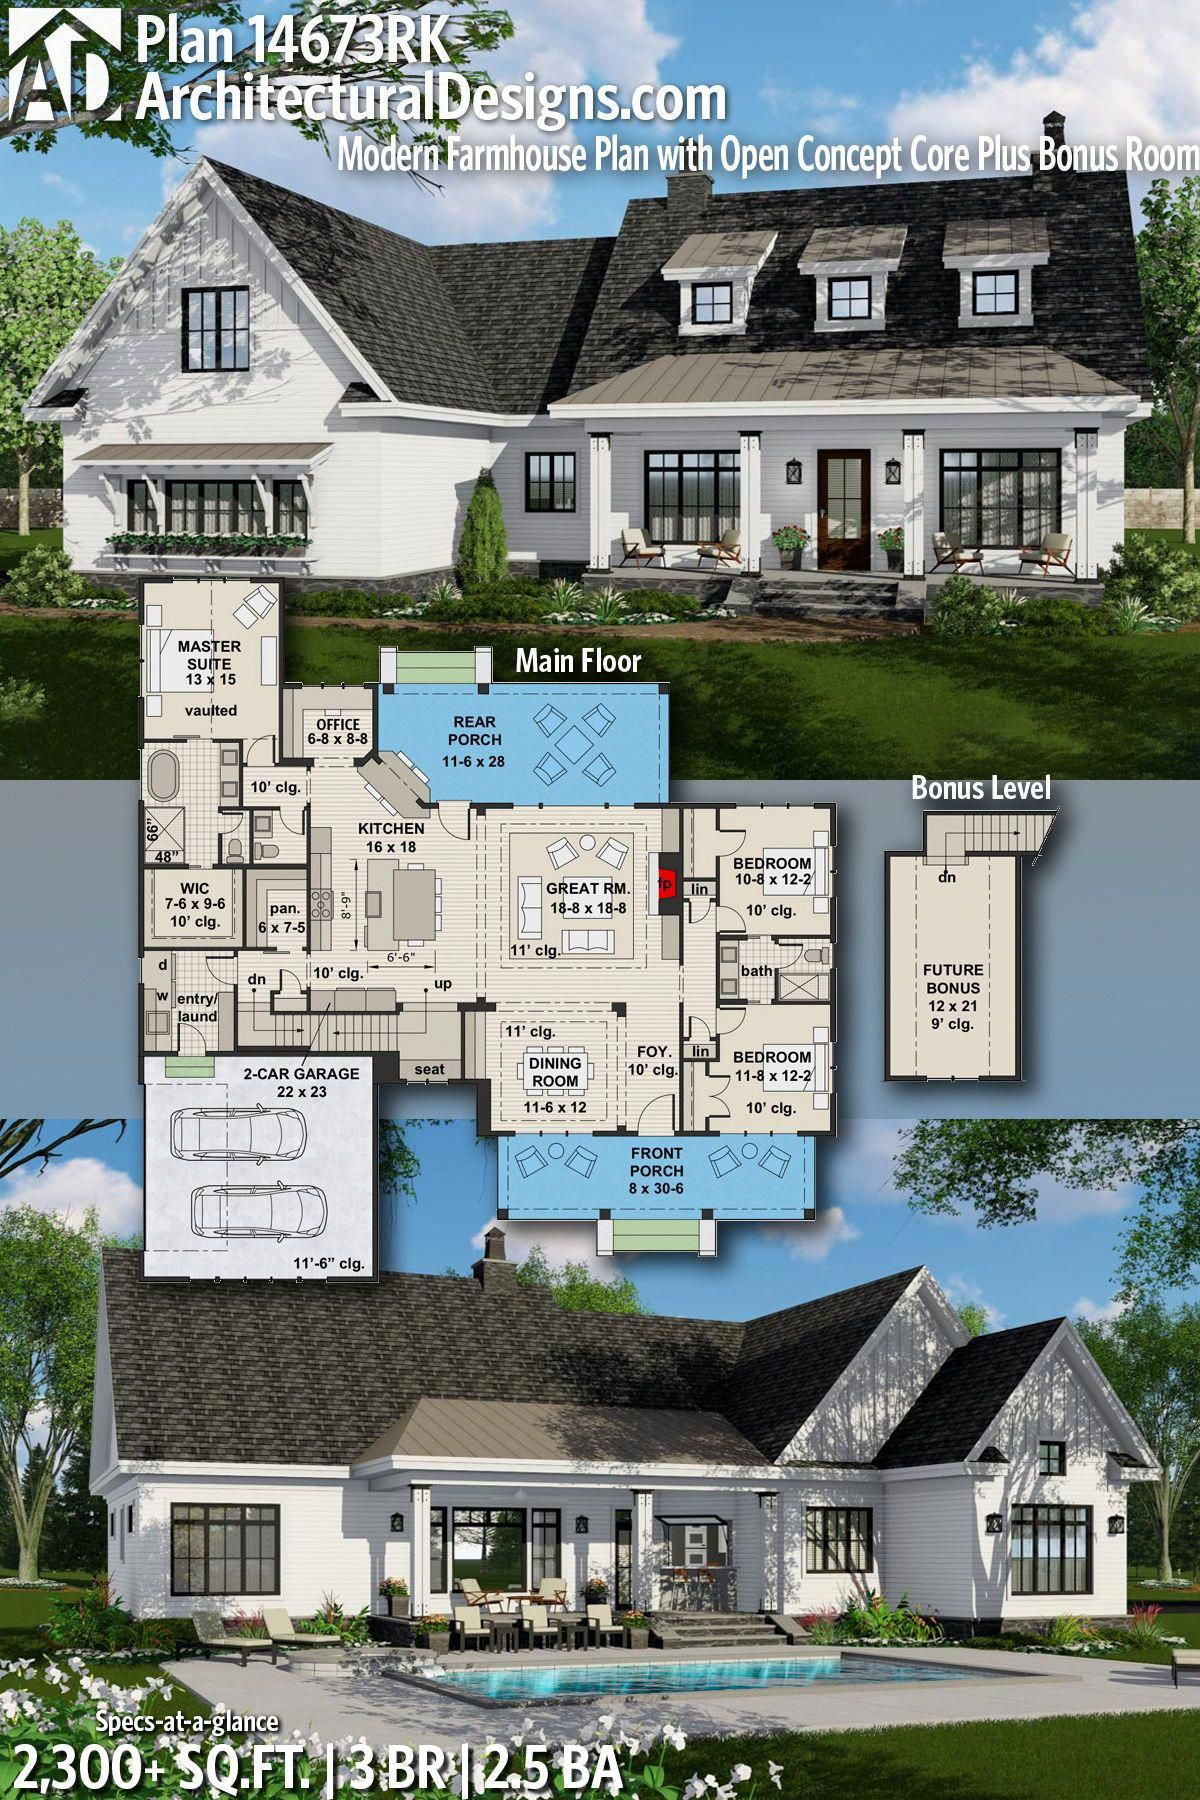 Architectural Designs House Plan 14673rk Gives You 3 Bedrooms 4 2 5 Baths And 2 300 Sq Ft Read Modern Farmhouse Plans House Plans Farmhouse Farmhouse Plans